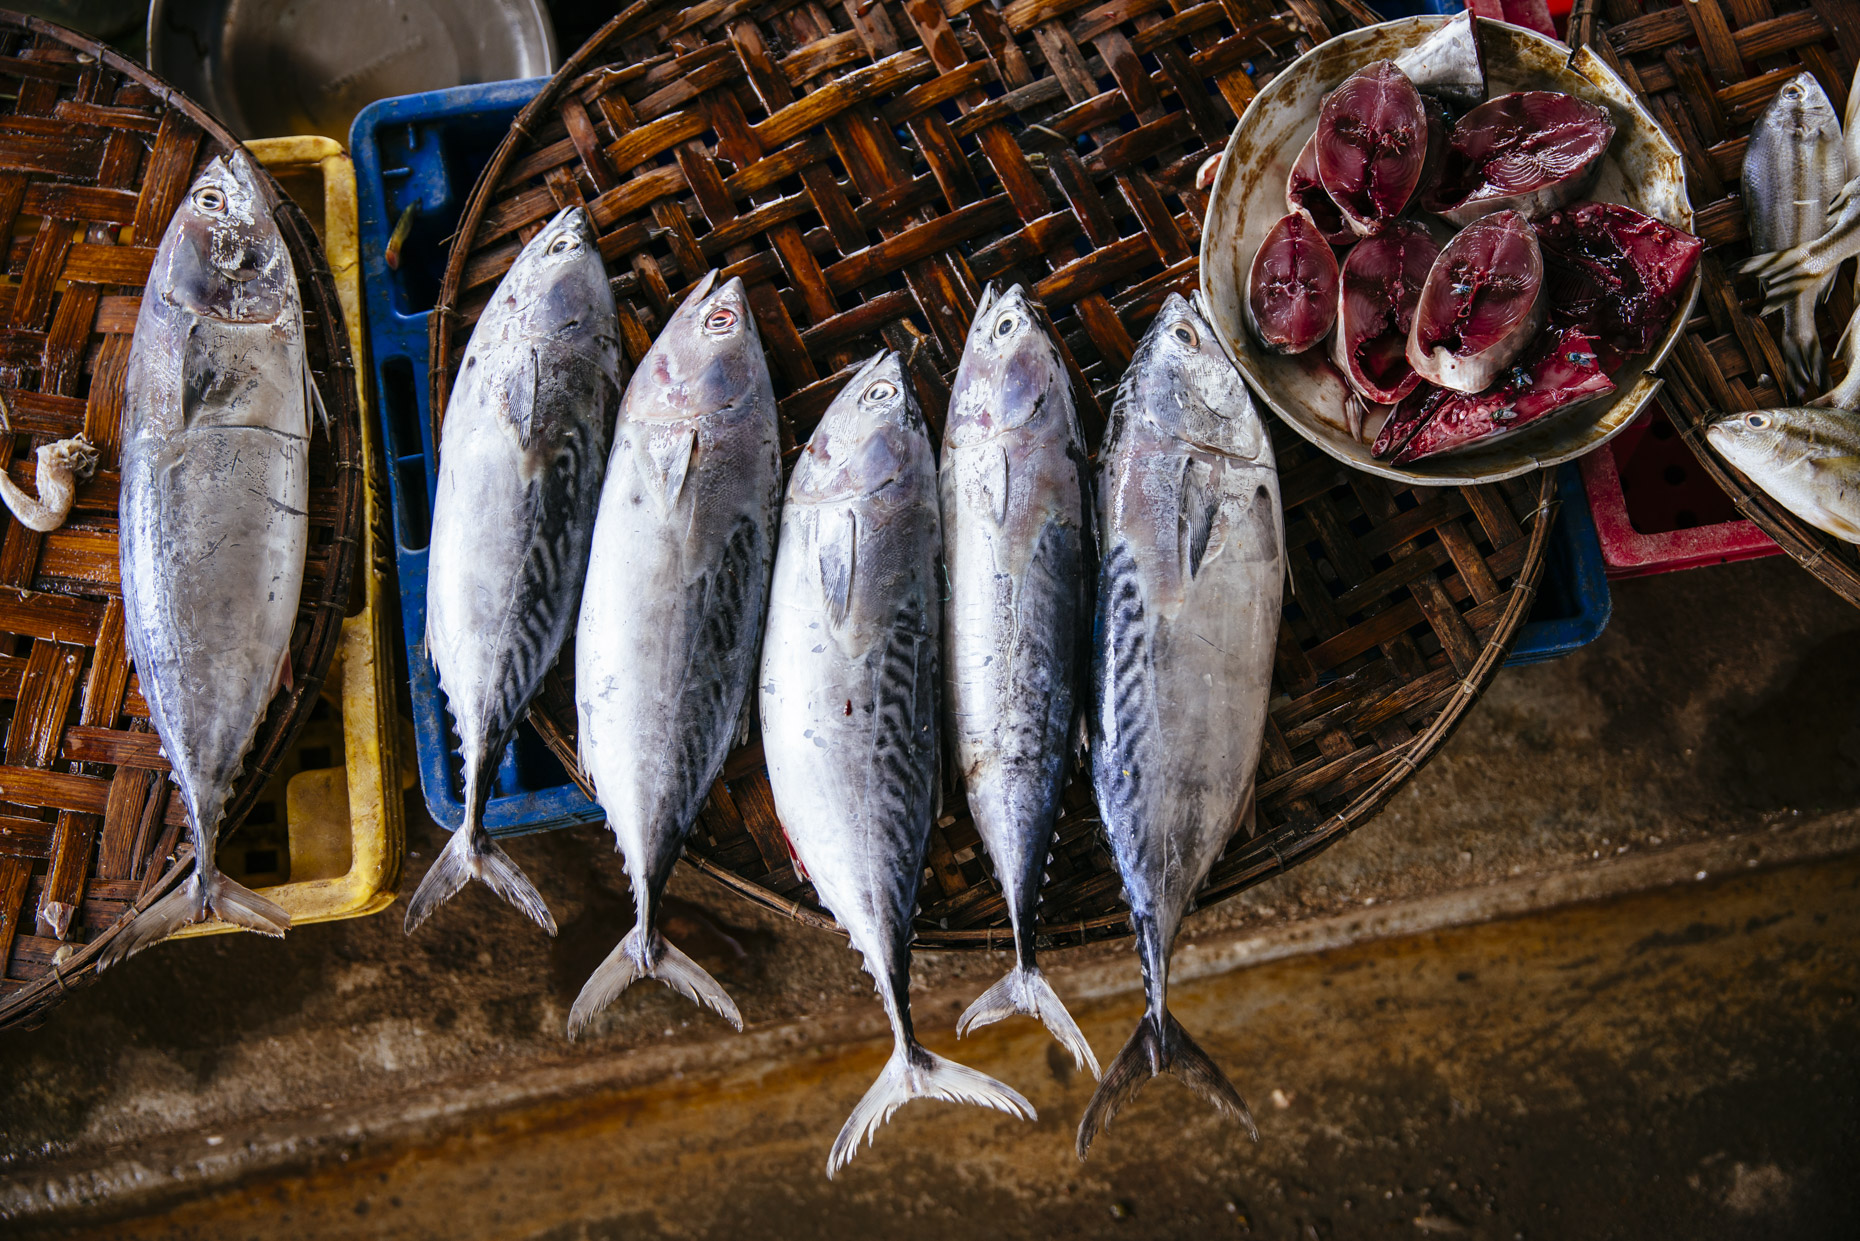 Baskets with freshly caught fish in outdoor market in Vietnam